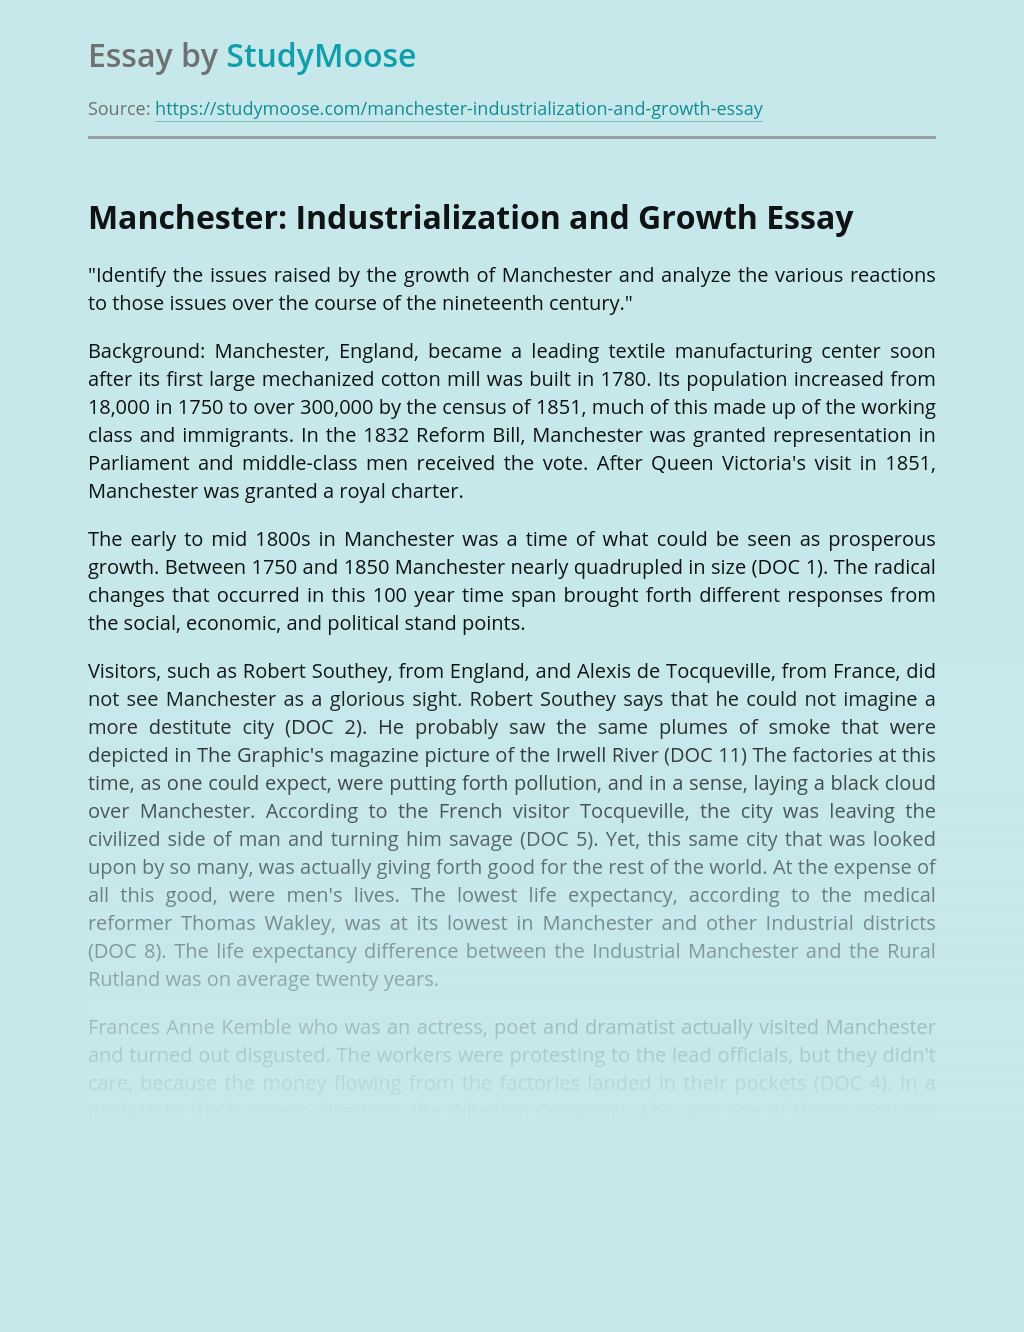 Industrial Revolution and Growth of Manchester